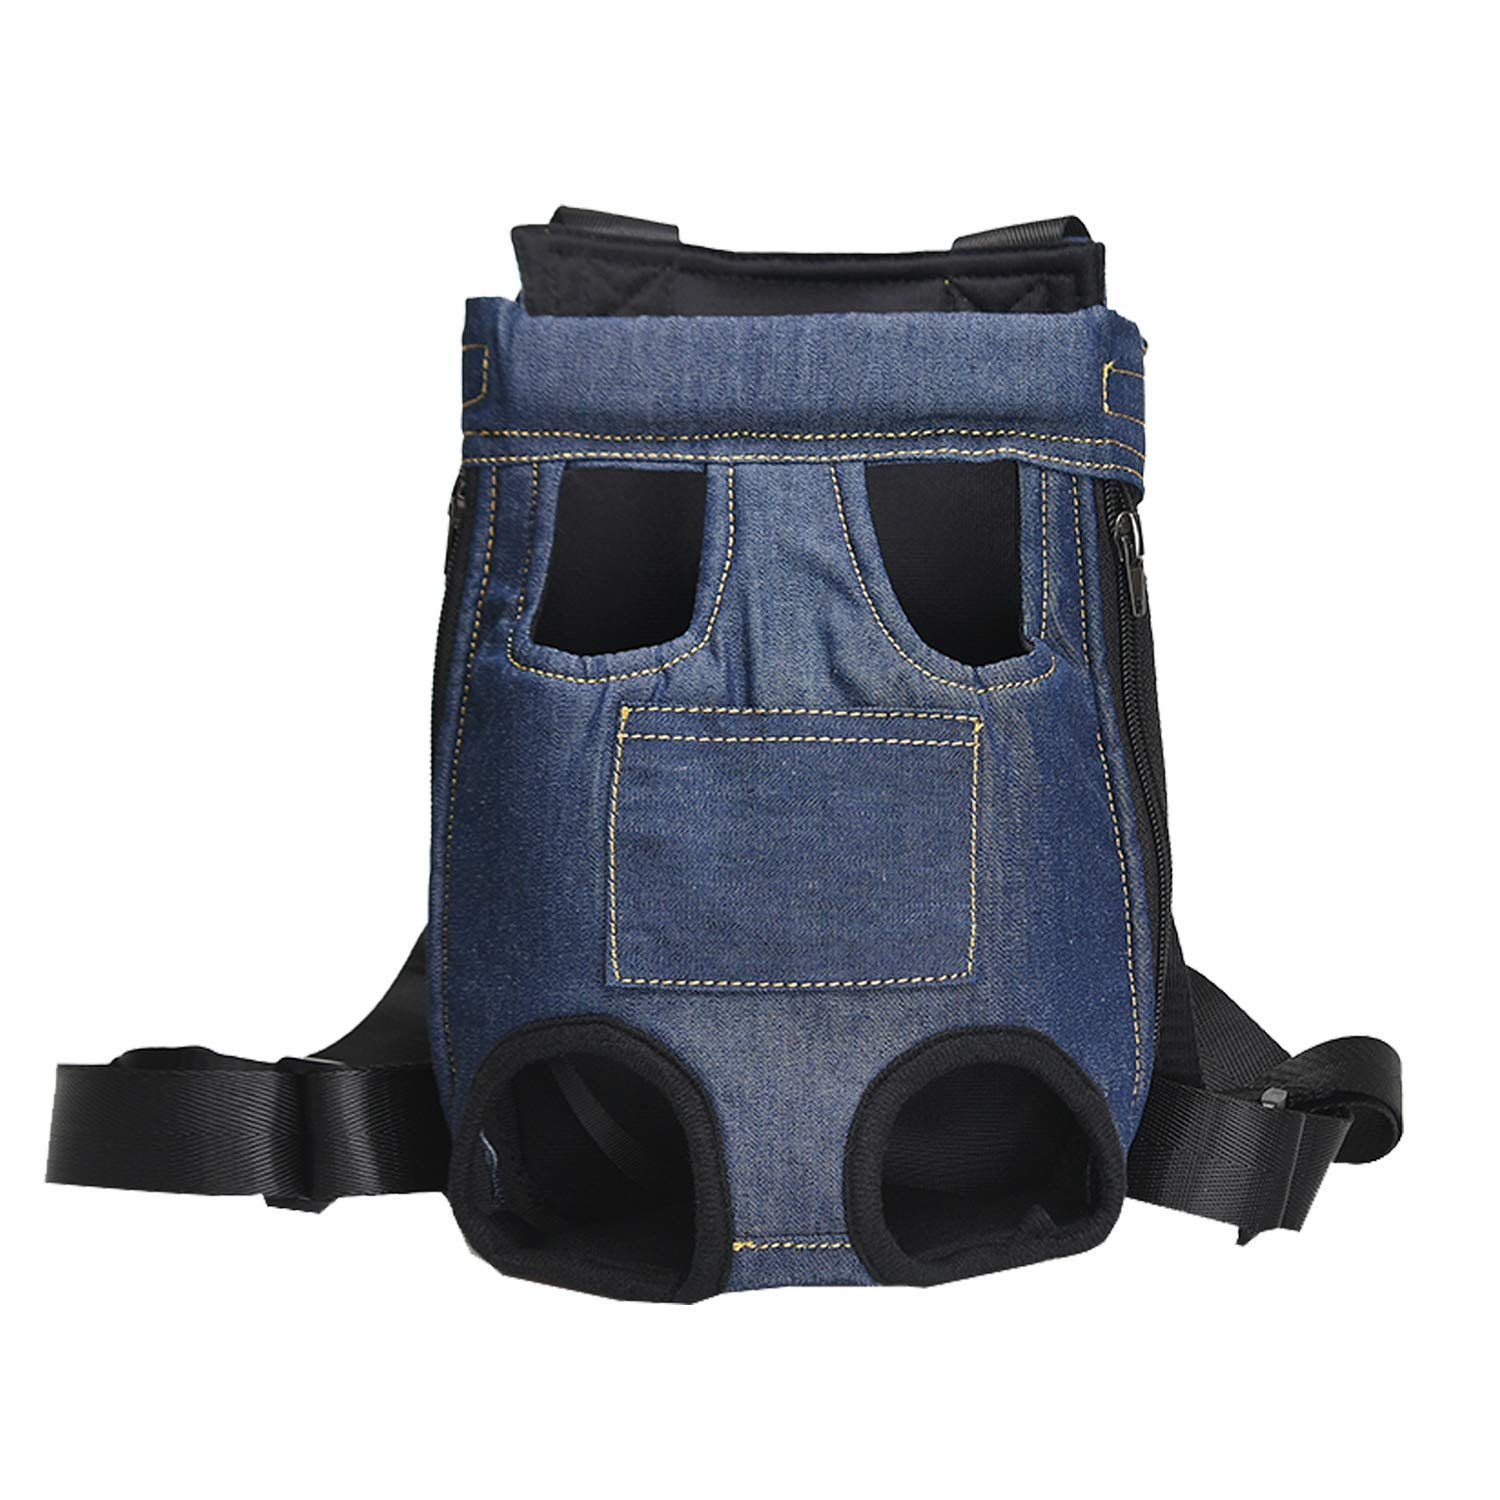 Pet Carrier Backpack Dog Cat Carrier Large Size, Adjustable Denim Front Kangaroo Pouch Pet Front Cat Dog Carrier Backpack Travel Bag, Legs Out, Easy-Fit for Traveling Hiking Camping.Dark XXXL